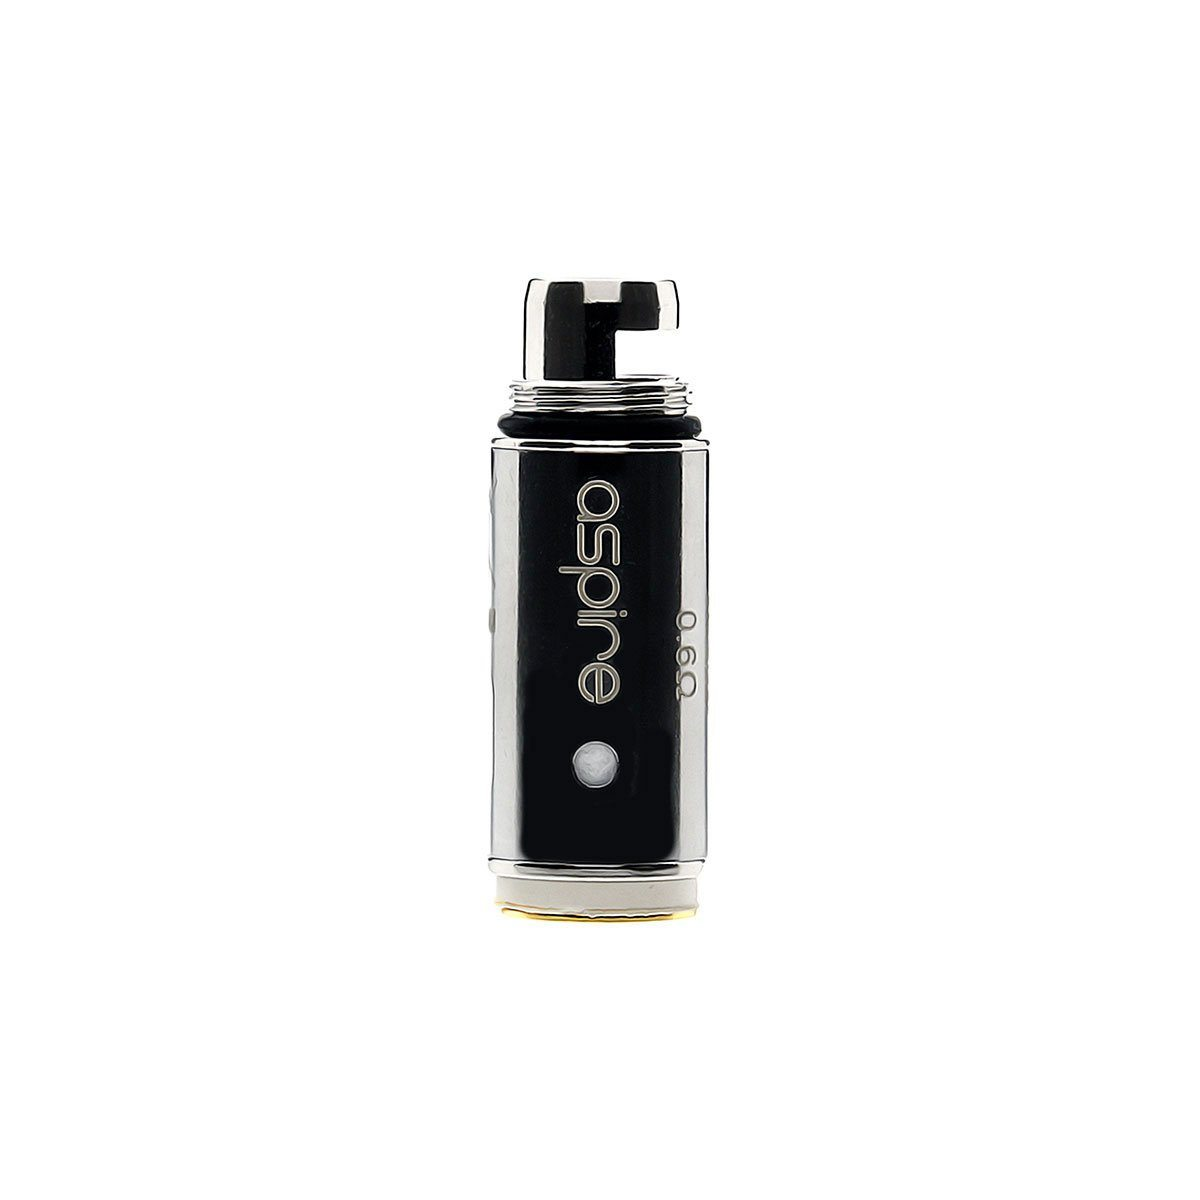 Aspire Breeze 2 All-In-One Starter Kit